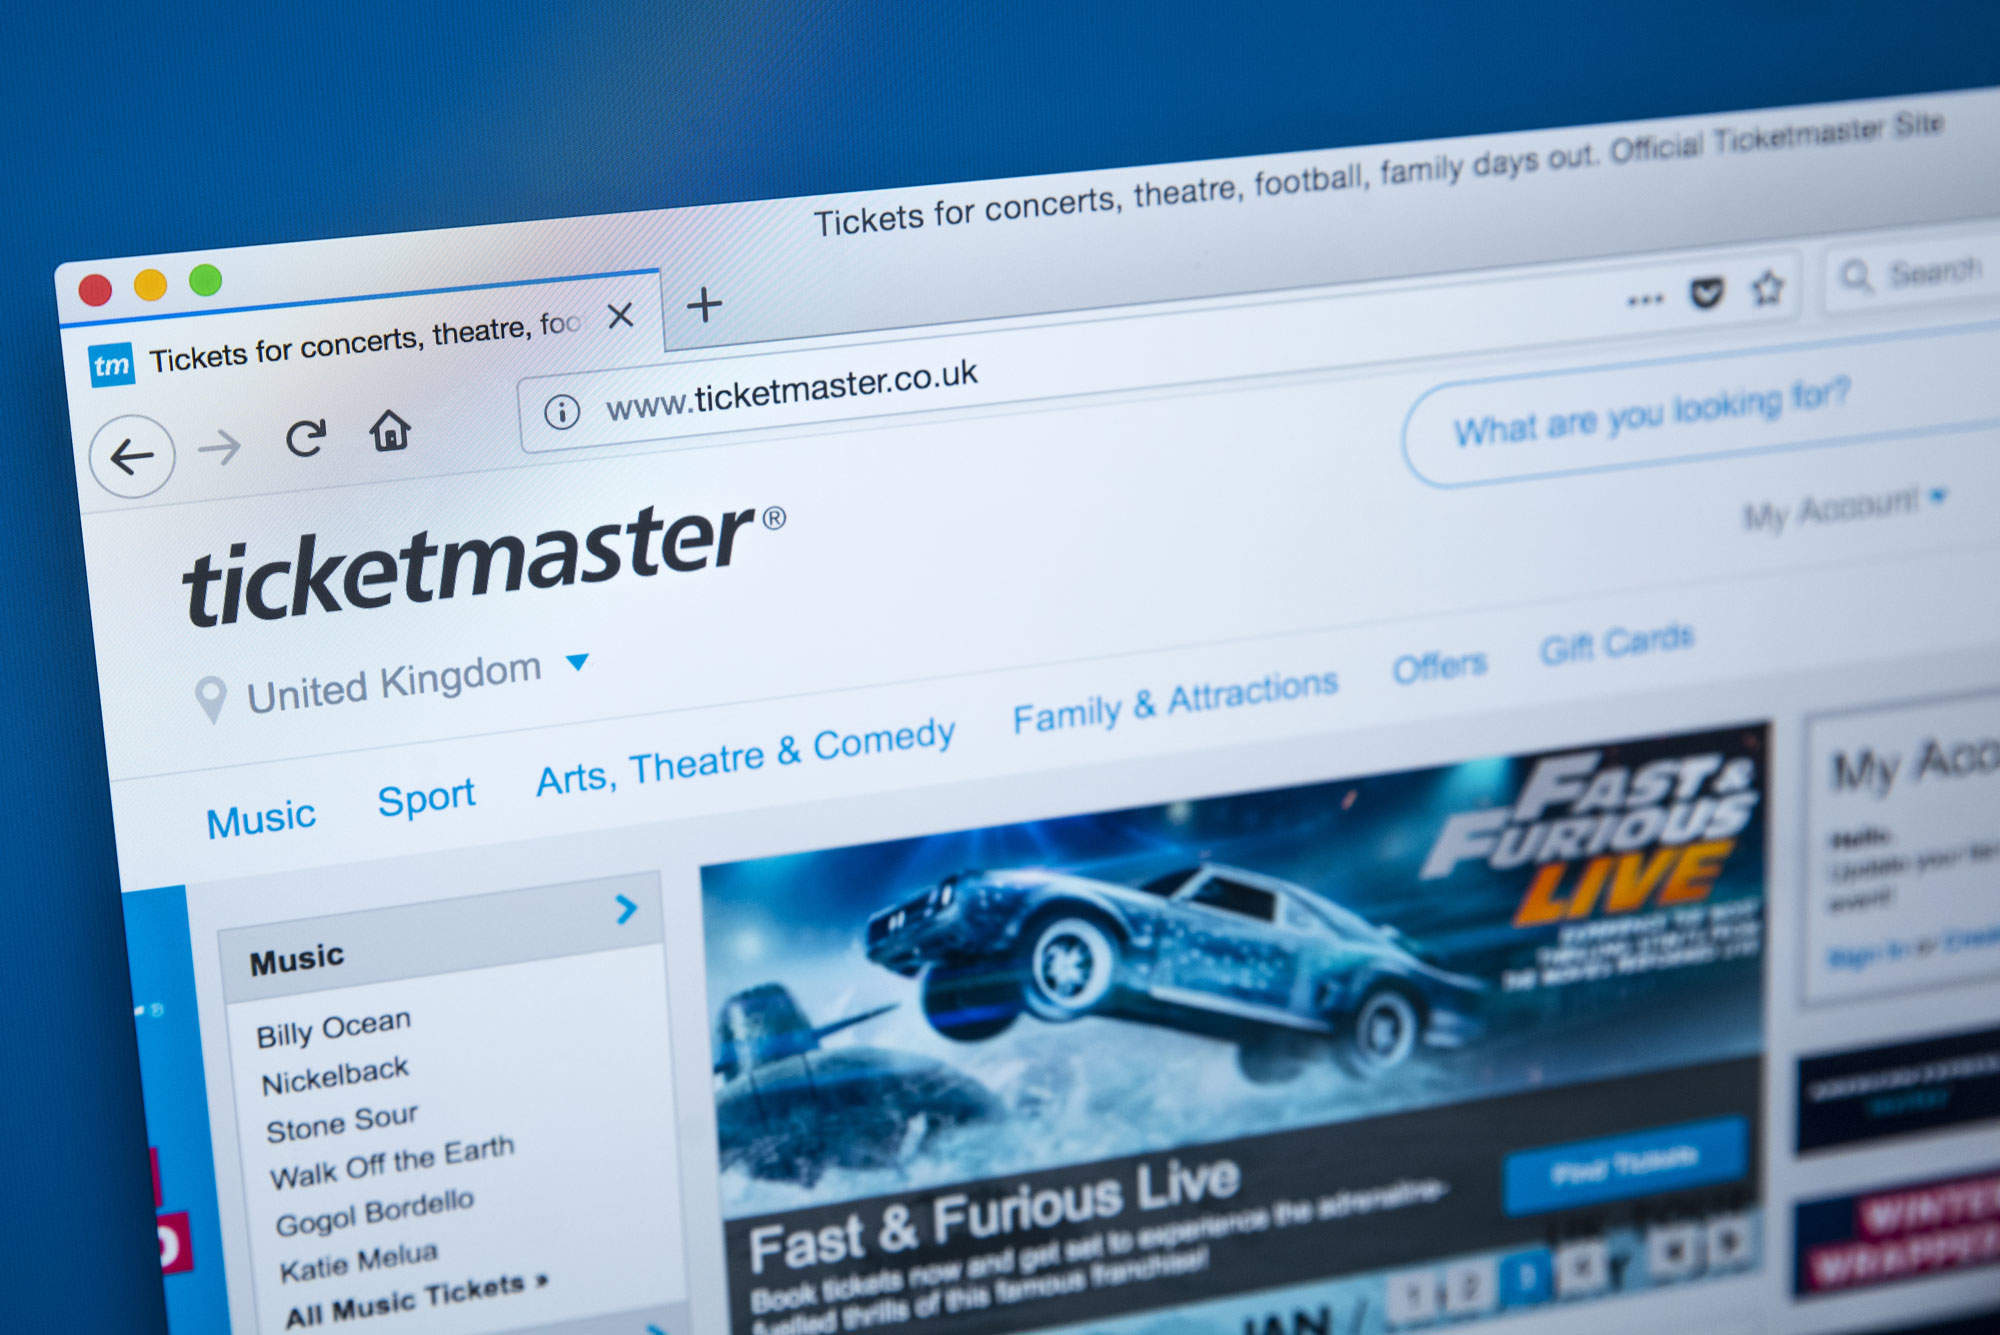 The Ticketmaster breach is yet another warning about third-party software security